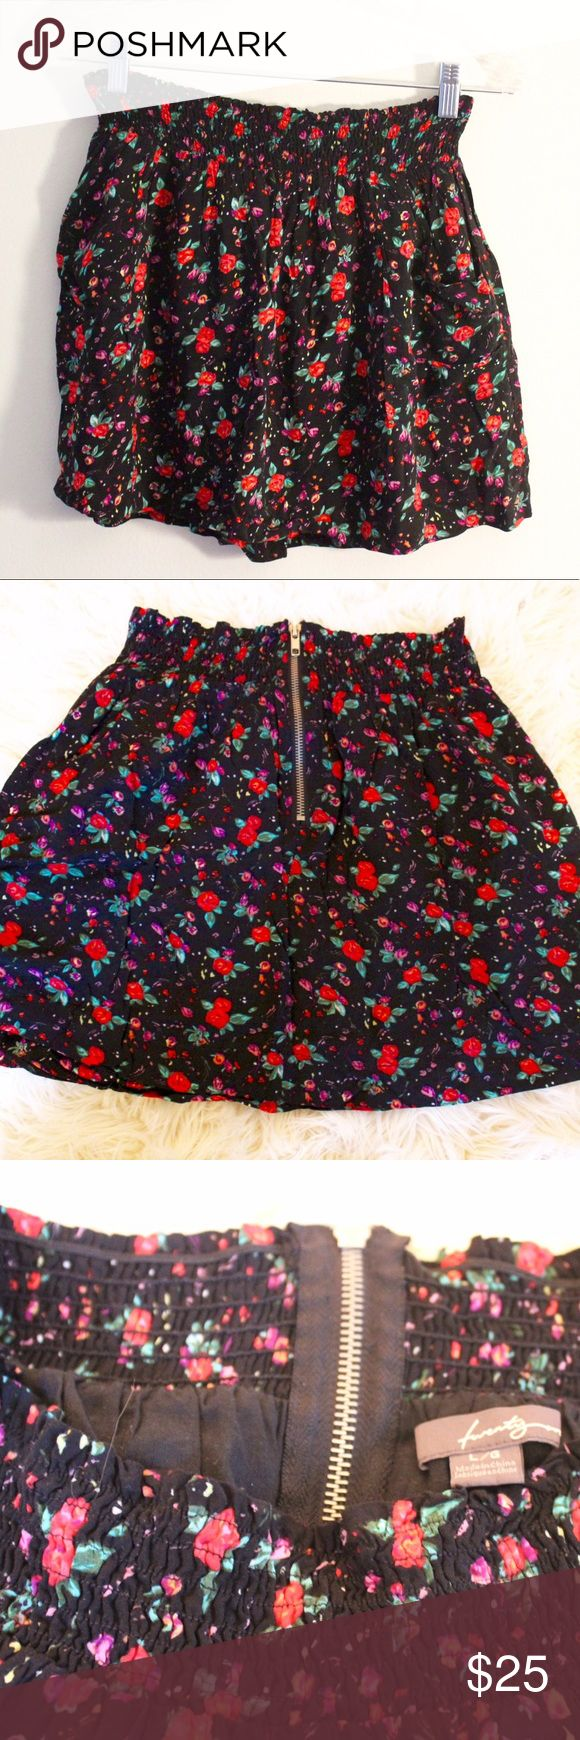 Floral summery skirt!! ☀️🌸 BUNDLE IT!! This skirt is so cute and comfortable. Perfect for a nice sunny day!! It's from Forever 21 and although says size L I am a Small and it's stretchy material allows it to fit me perfectly!! Forever 21 Skirts Mini